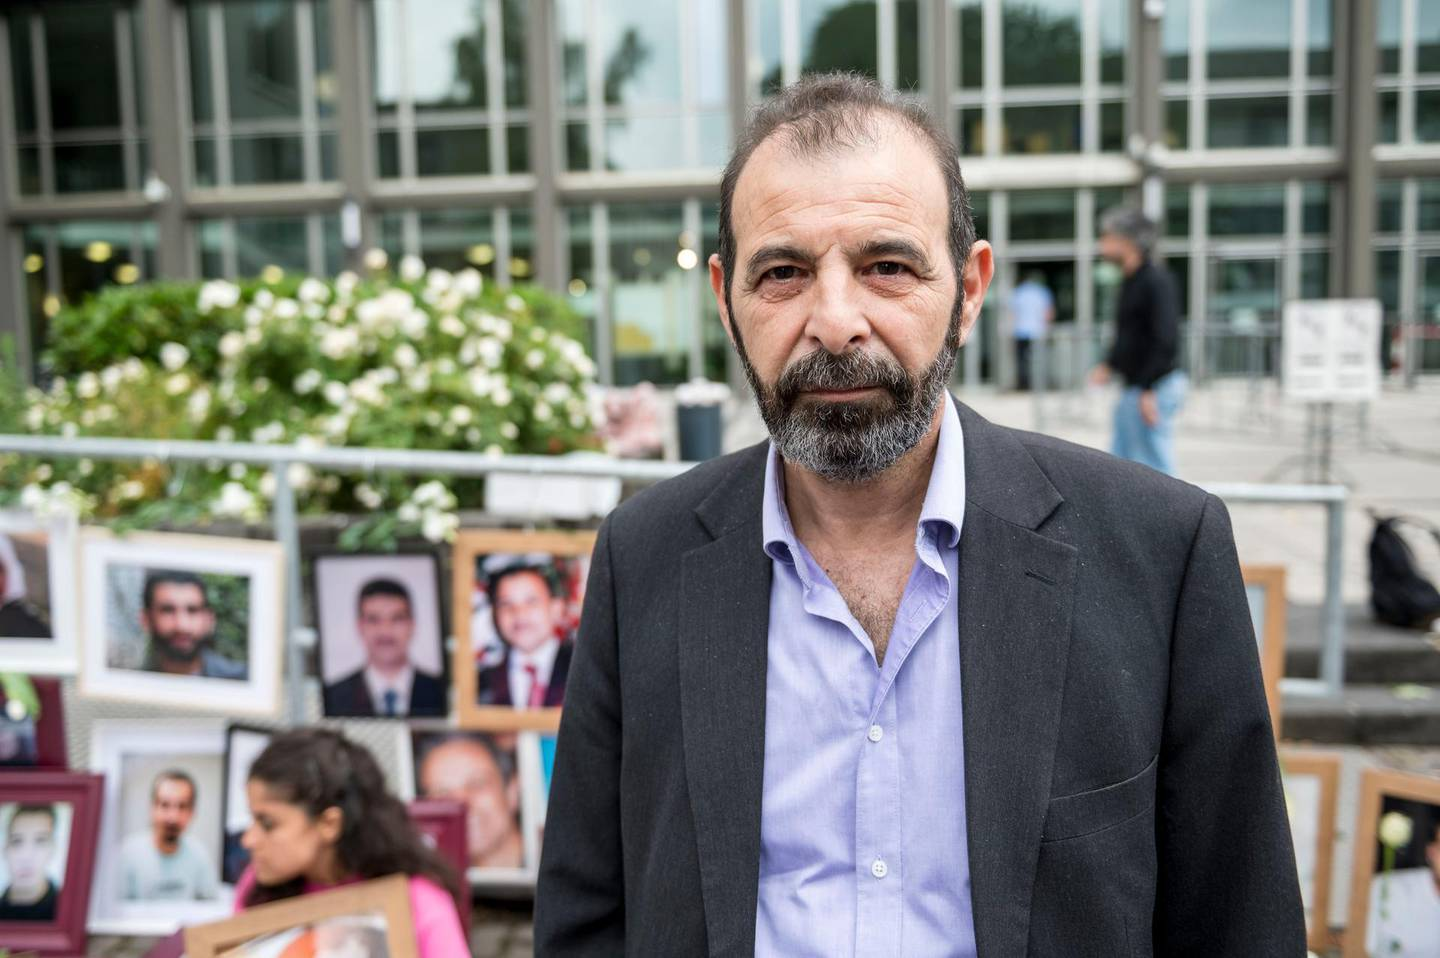 Syrian human rights lawyer Anwar al-Bunni, speaks to the media in front of pictures of victims of the Syrian regime, during a protest outside the trial against two Syrian alleged former intelligence officers accused for crimes against humanity, in the first trial of its kind to emerge from the Syrian conflict, on June 4, 2020 in Koblenz, western Germany. (Photo by Thomas Lohnes / AFP)